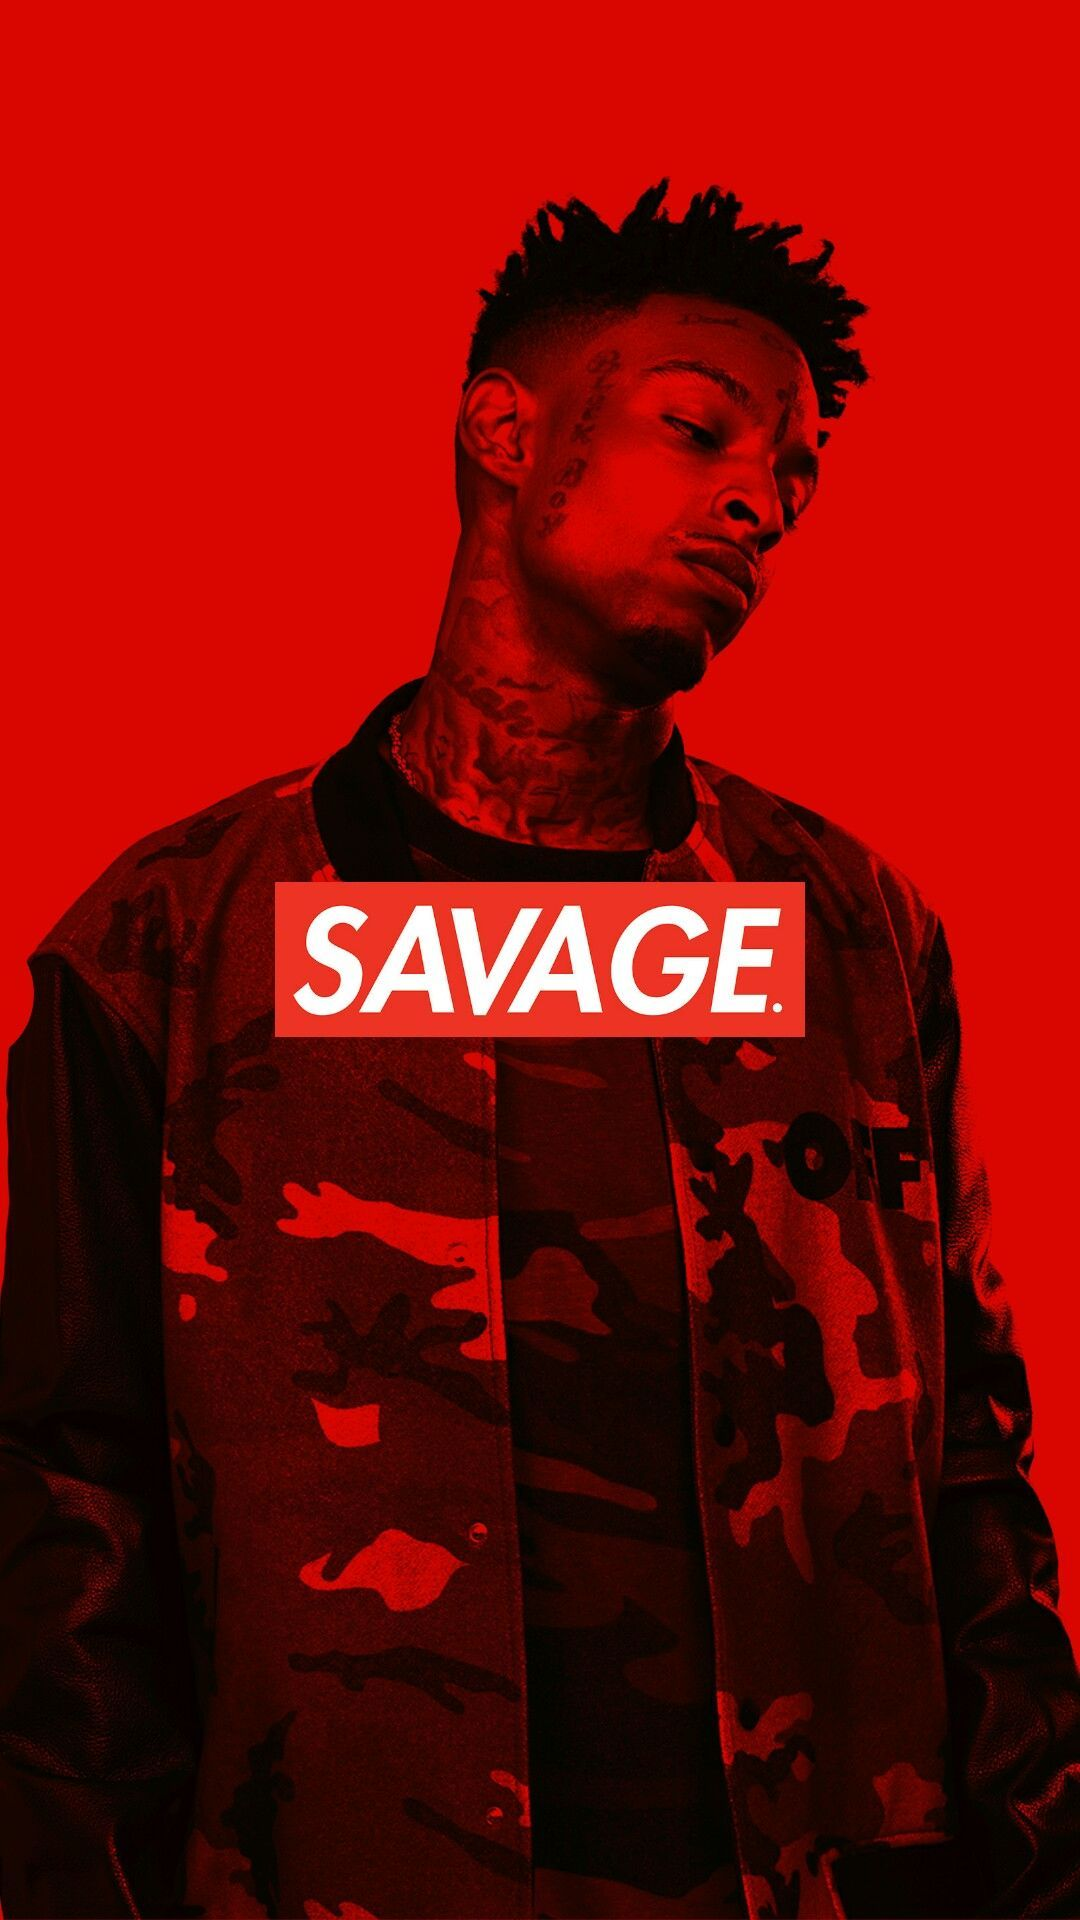 21 savage album cover wallpapers top free 21 savage album cover backgrounds wallpaperaccess 21 savage album cover wallpapers top